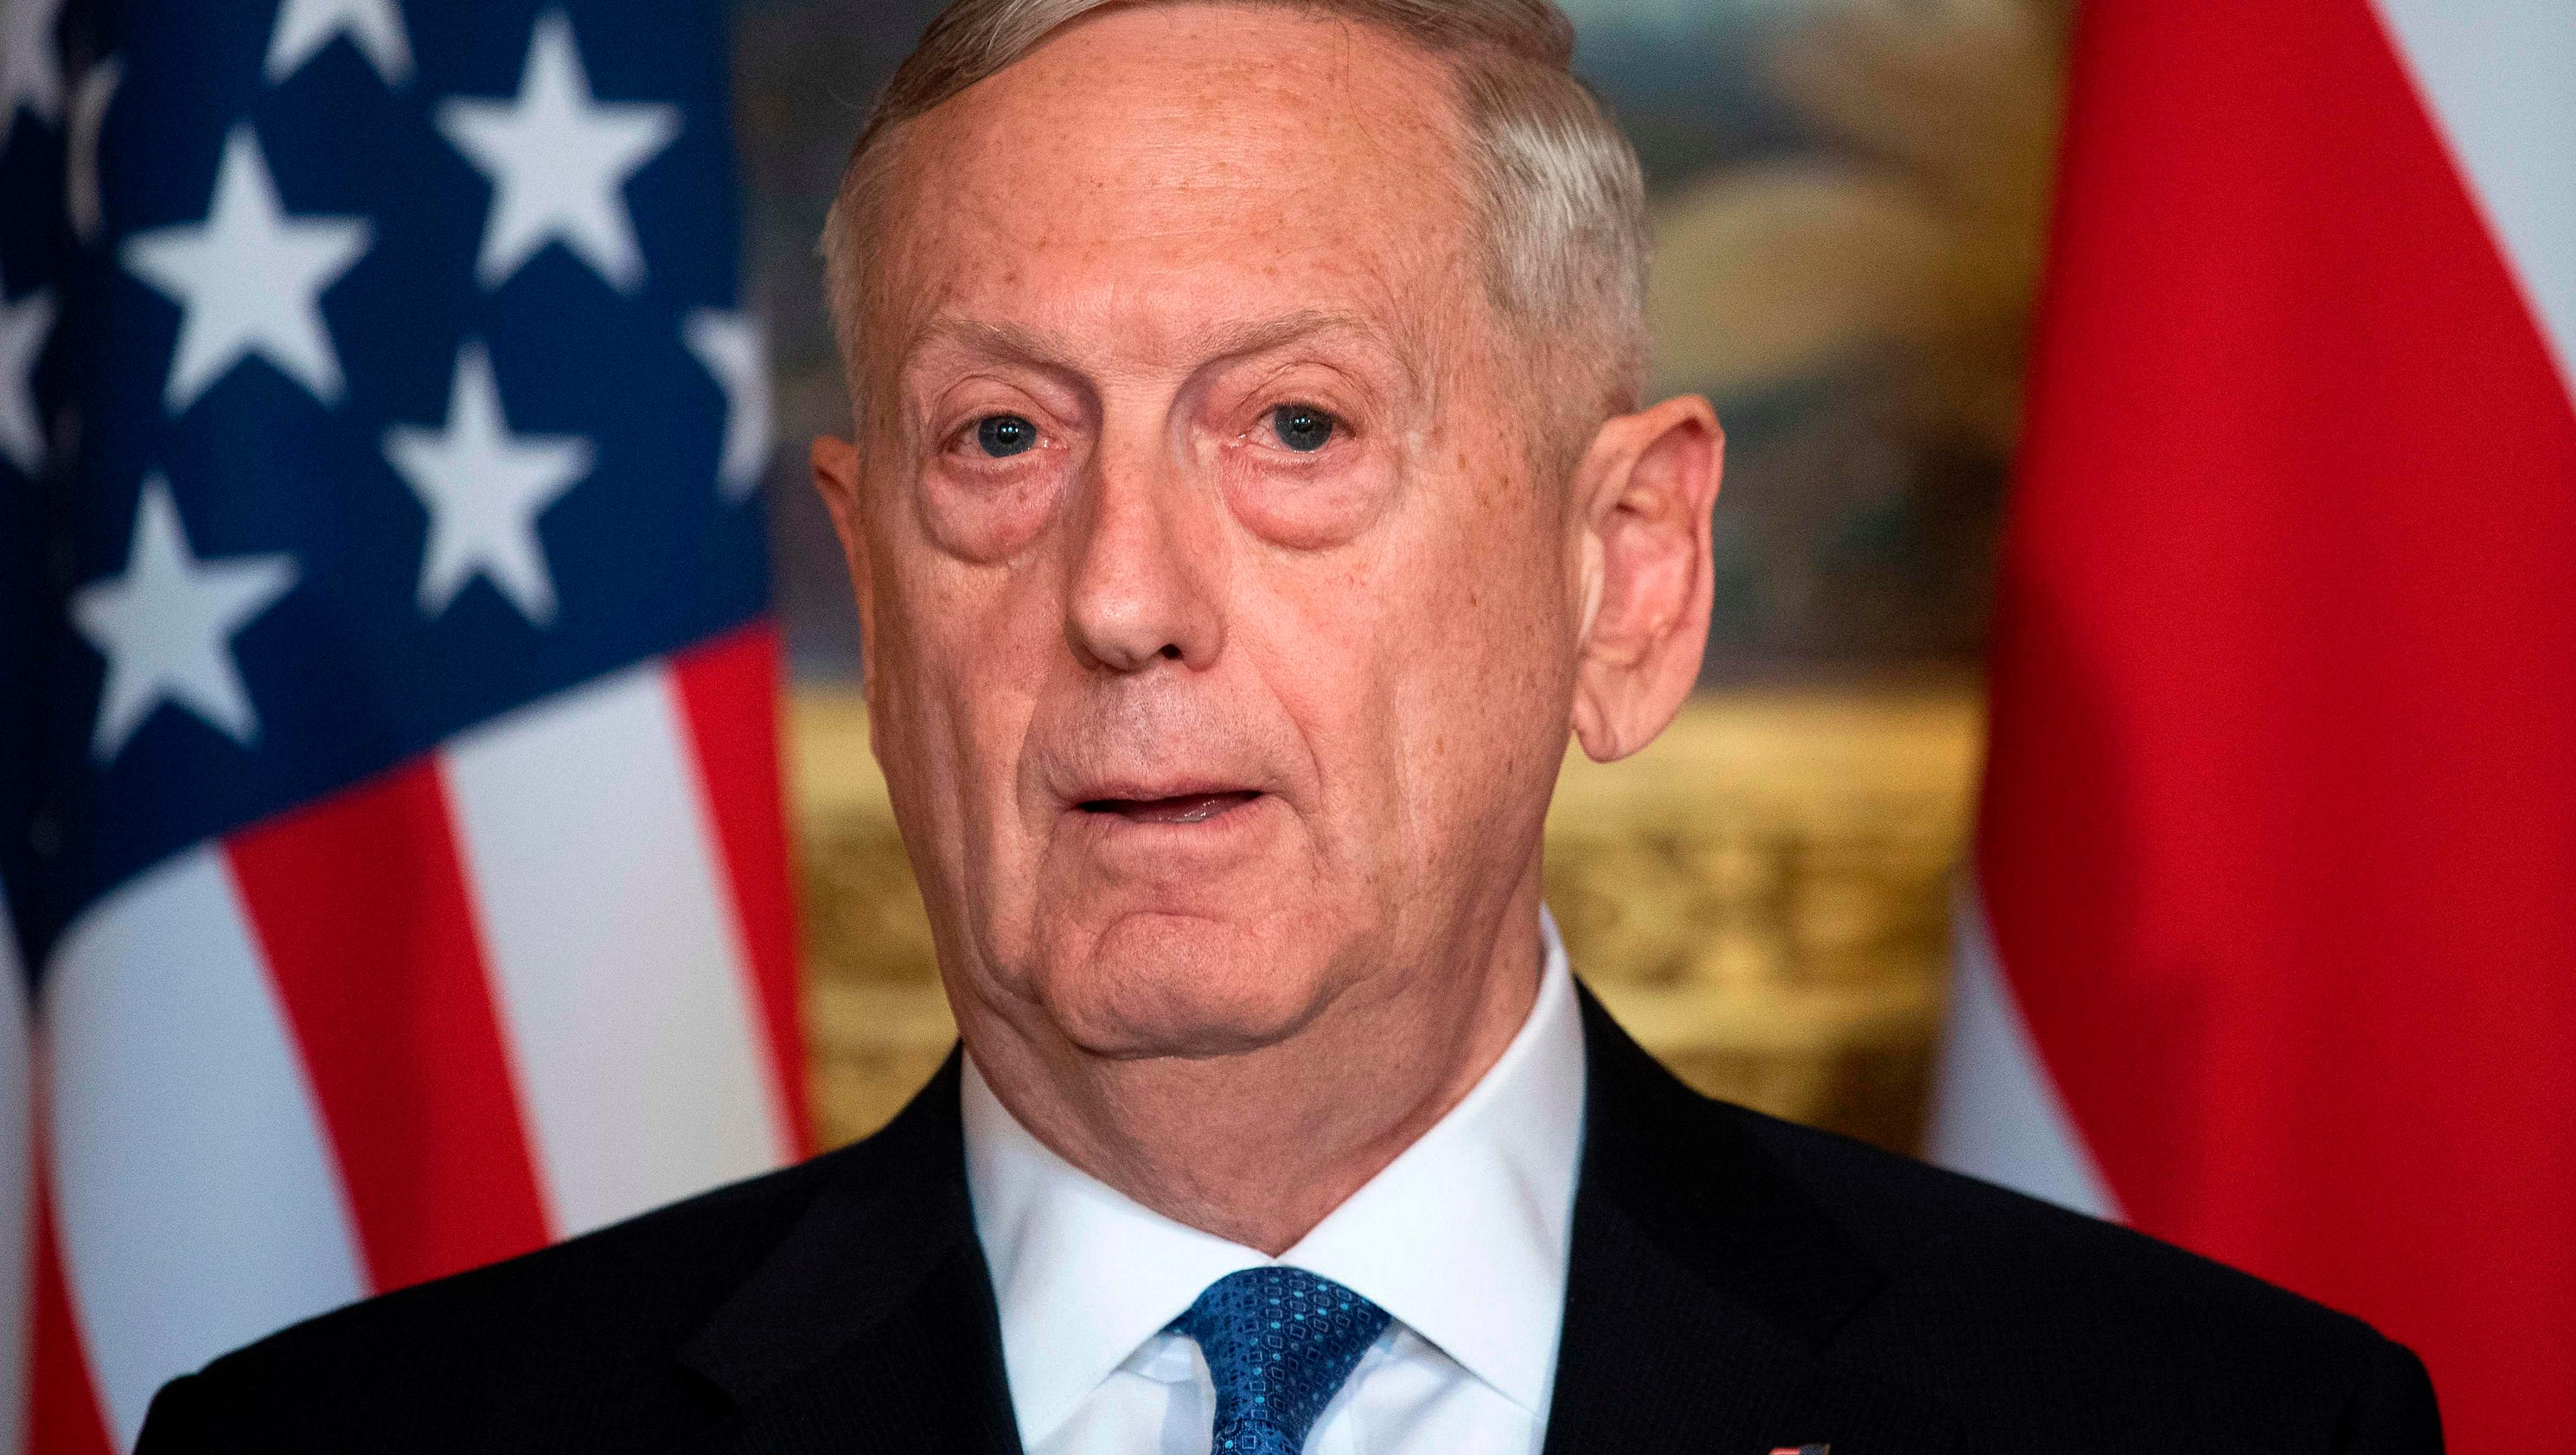 Mattis: North Korea's failed missile launch a reckless provocation